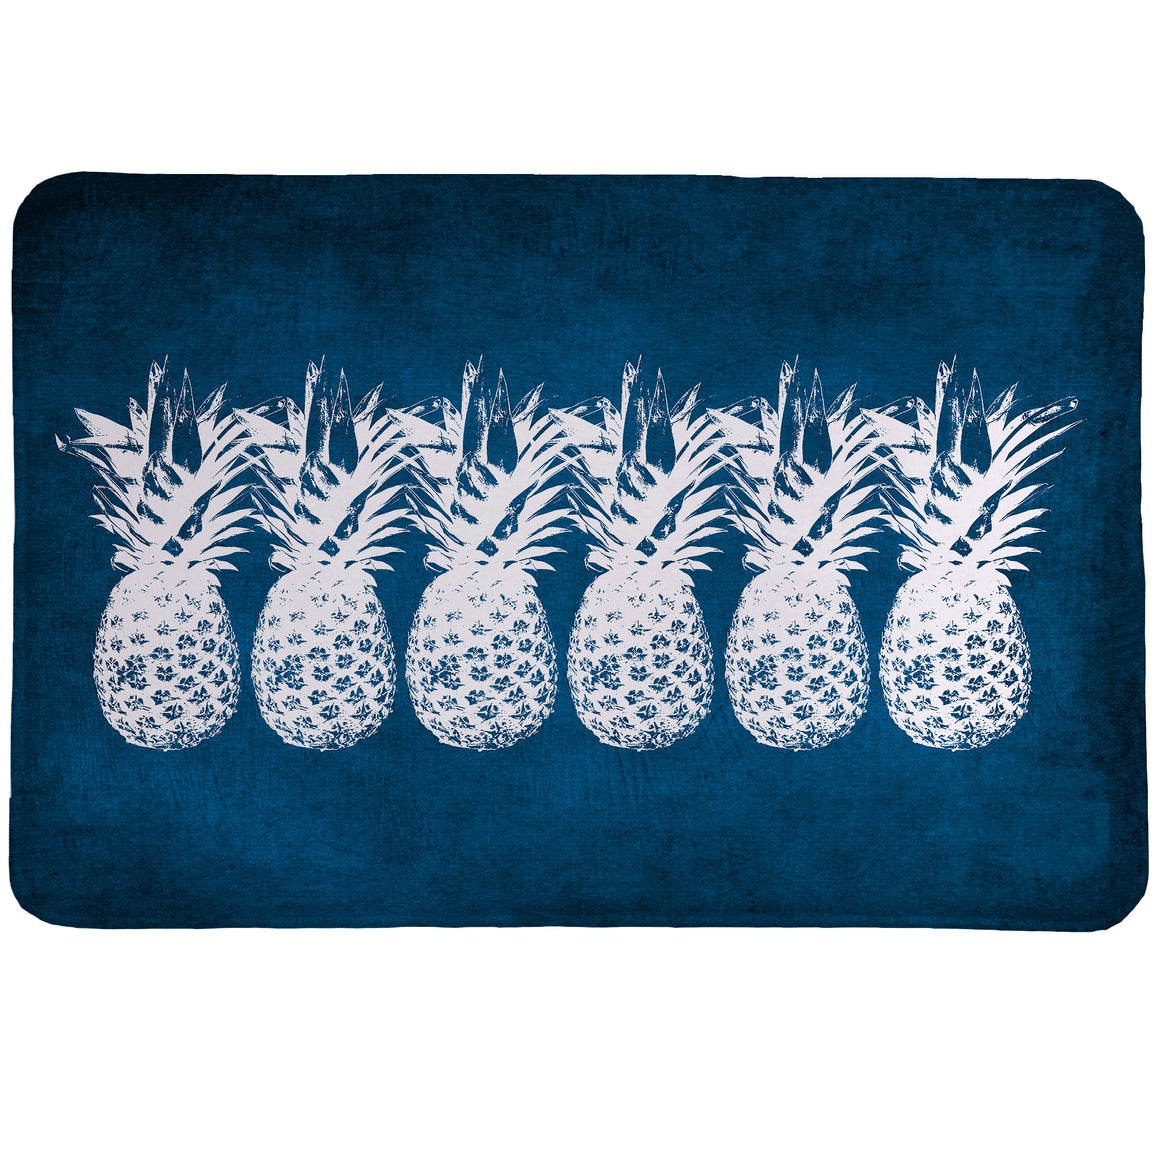 Indigo Pineapples Memory Foam Rug features a row of white pineapples standing out against a deep indigo blue background